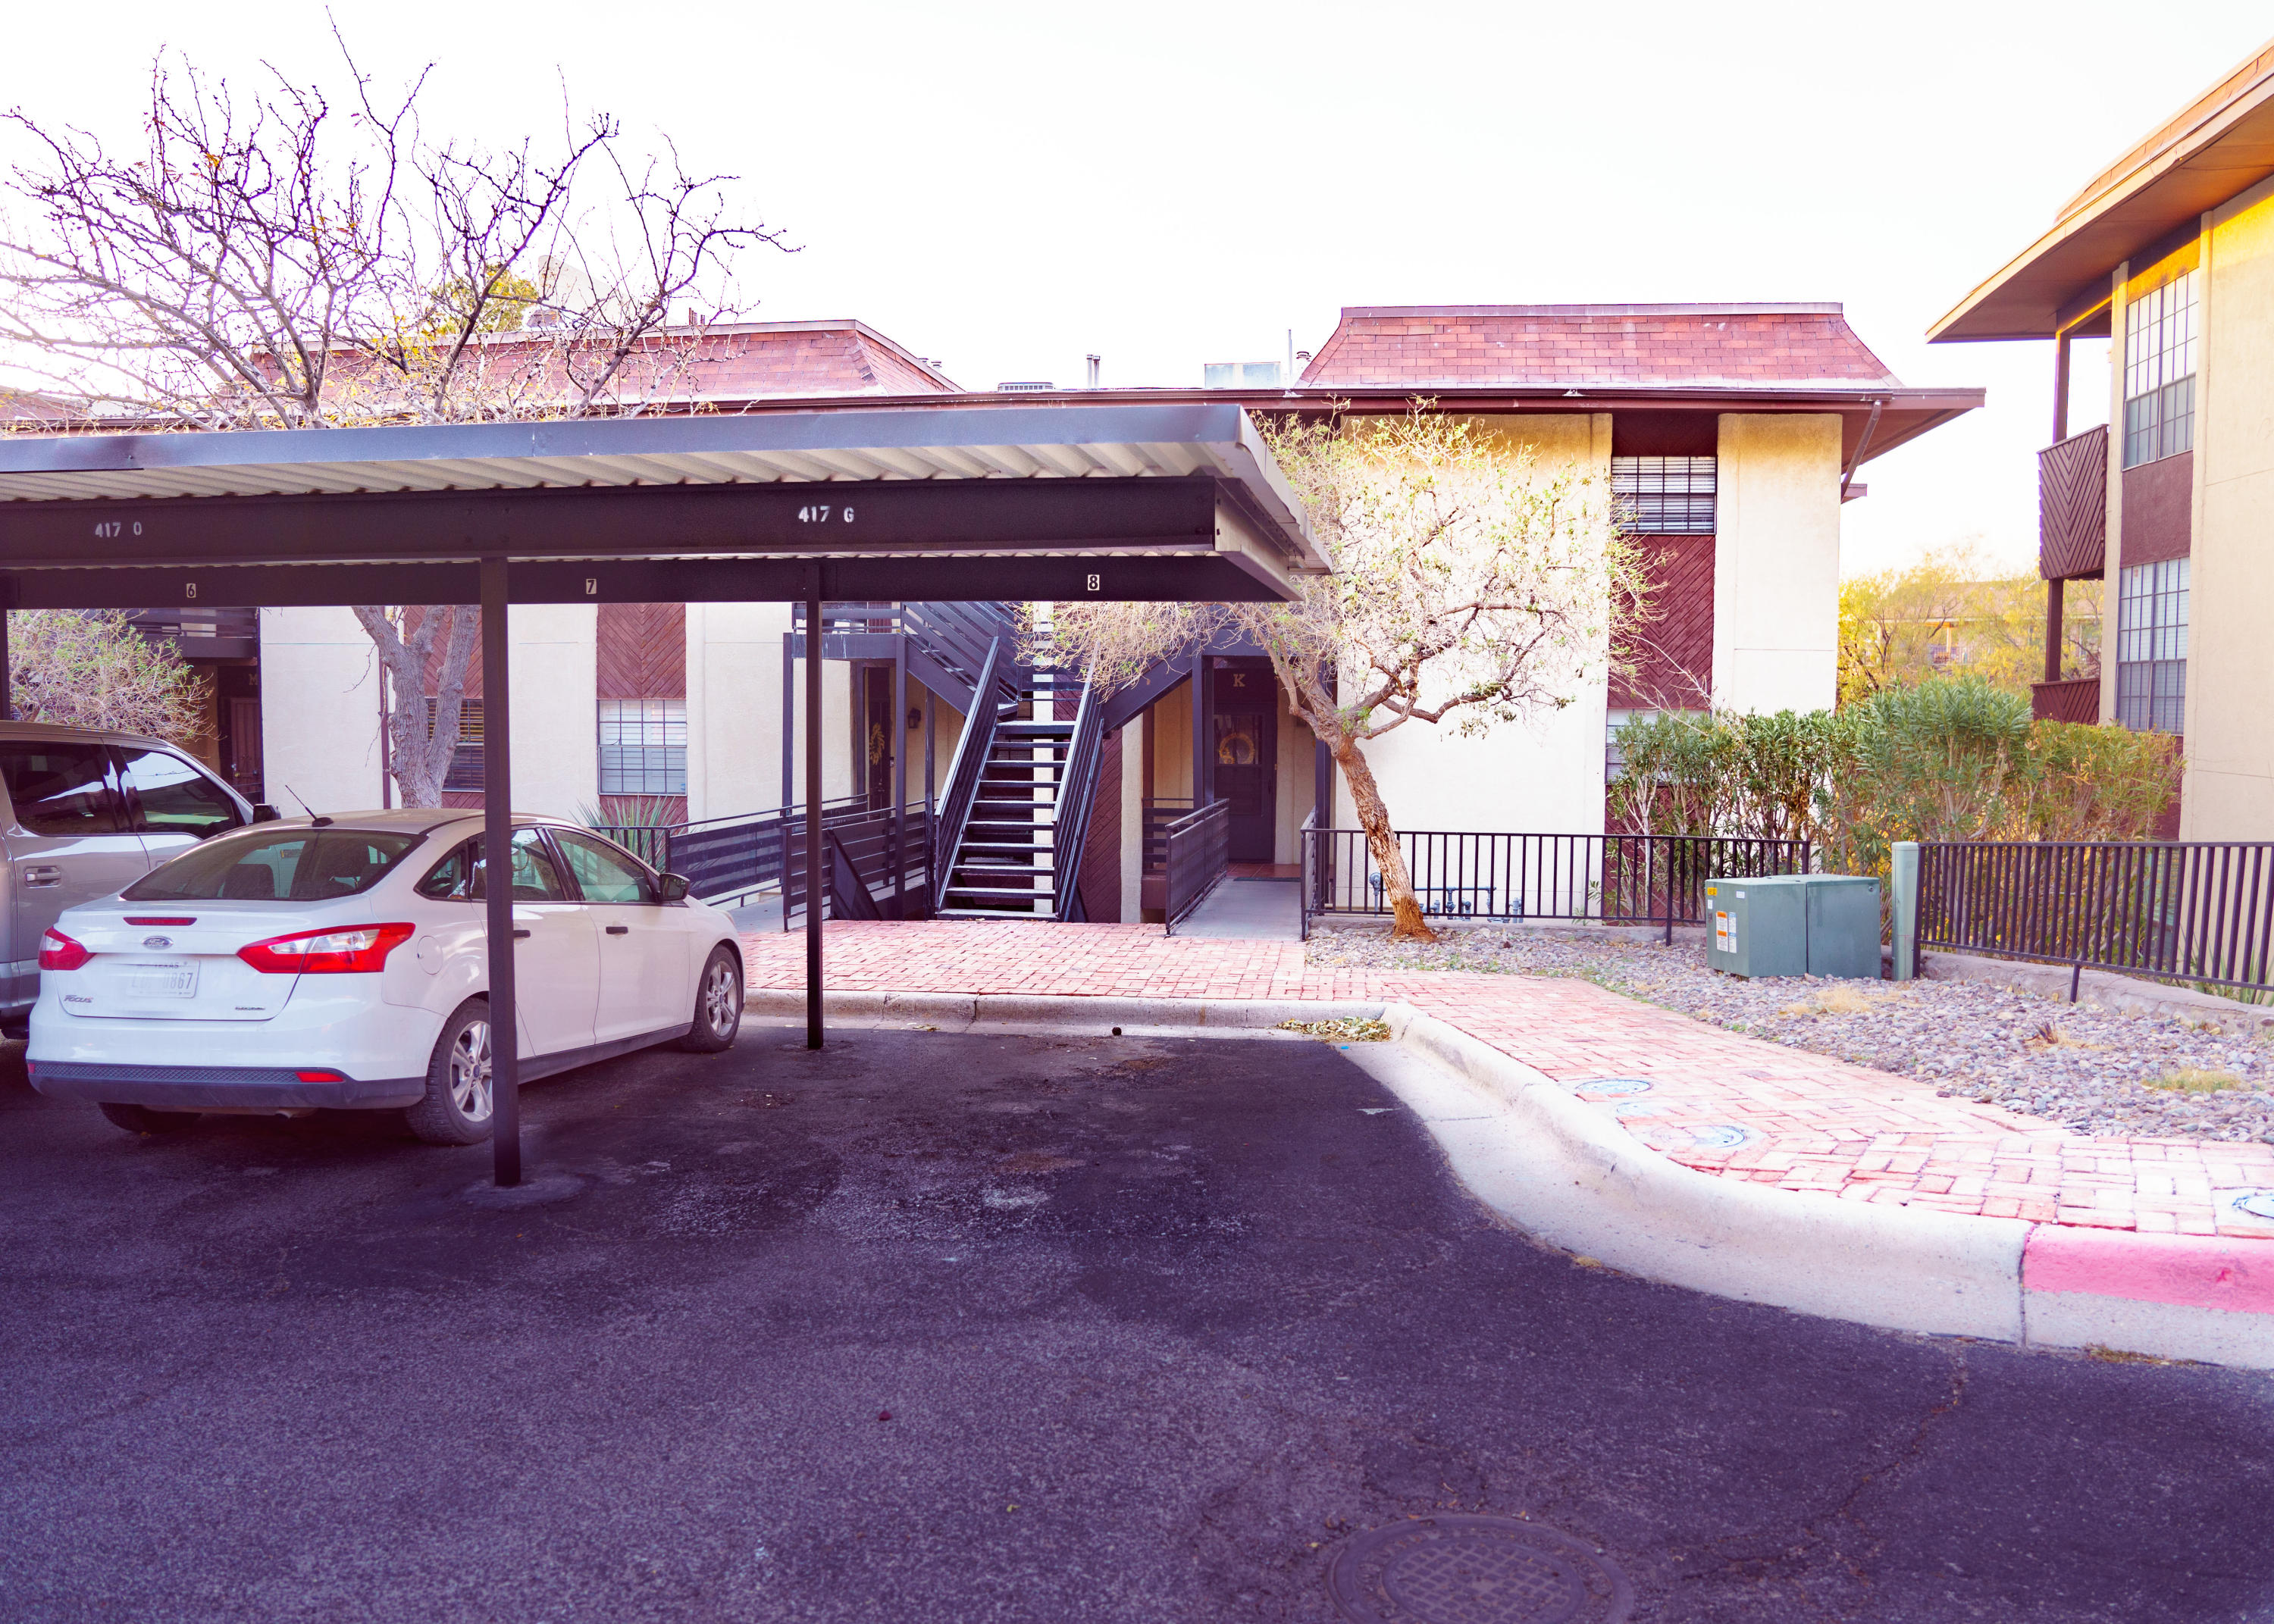 417 Irondale, El Paso, Texas 79912, 3 Bedrooms Bedrooms, ,2 BathroomsBathrooms,Residential,For sale,Irondale,837751